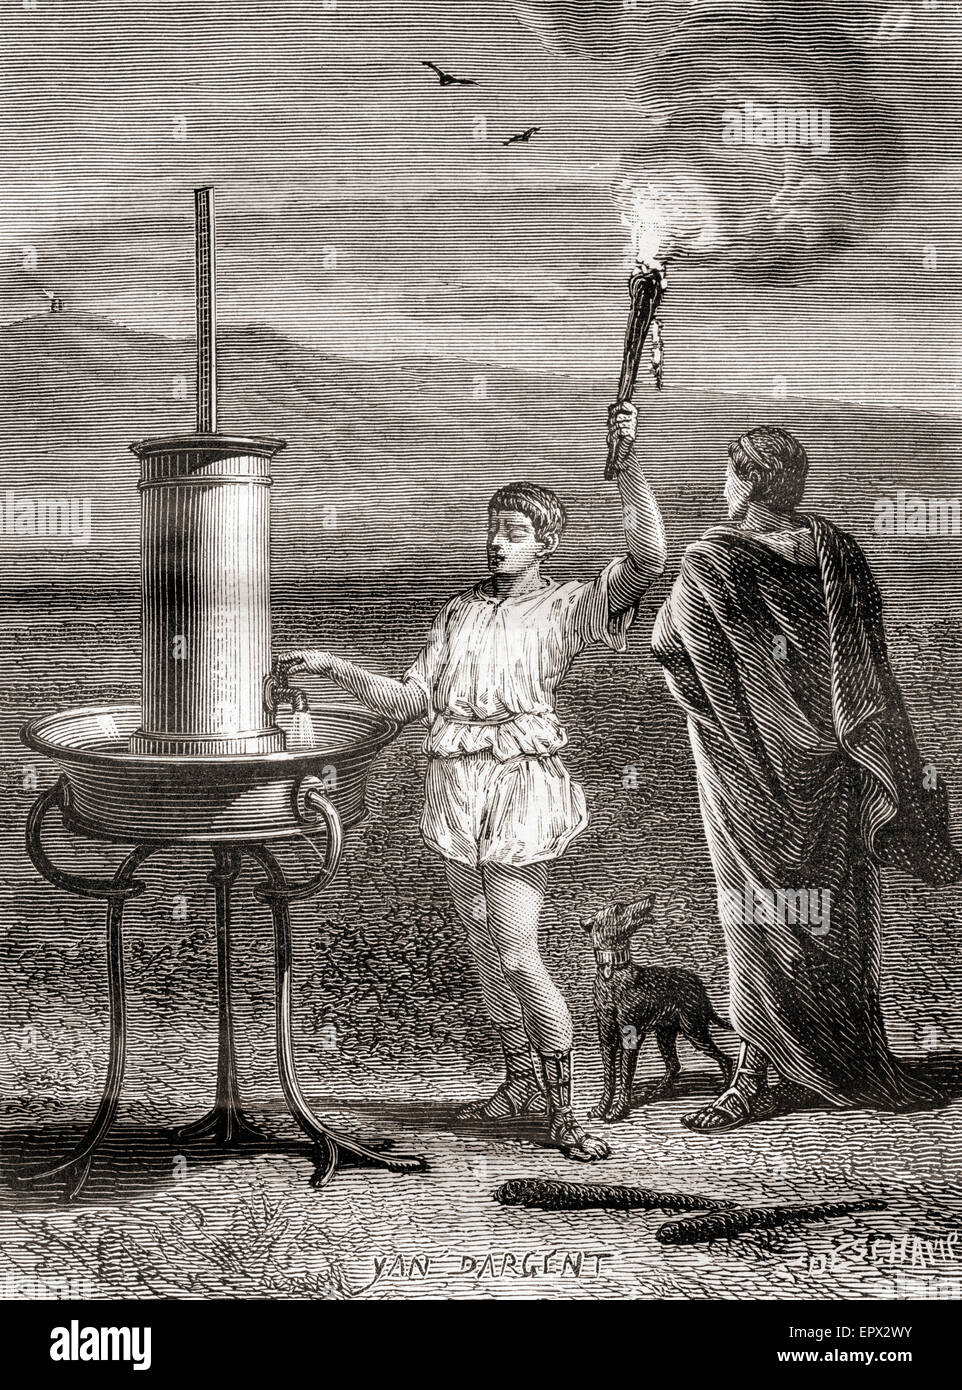 The ancient Greek hydraulic semaphore system being used by Aeneas to send a message, 4th century B.C. - Stock Image